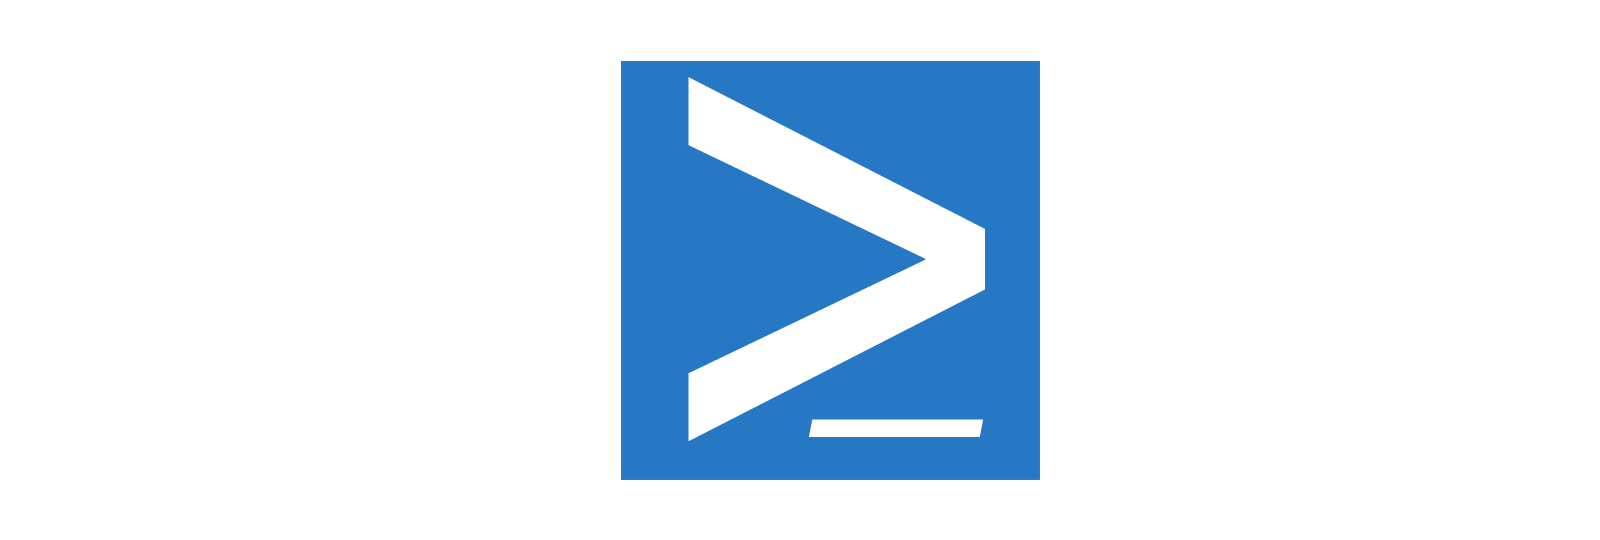 Event Viewer: come inviare notifiche e-mail dal Registro Eventi con uno script Powershell